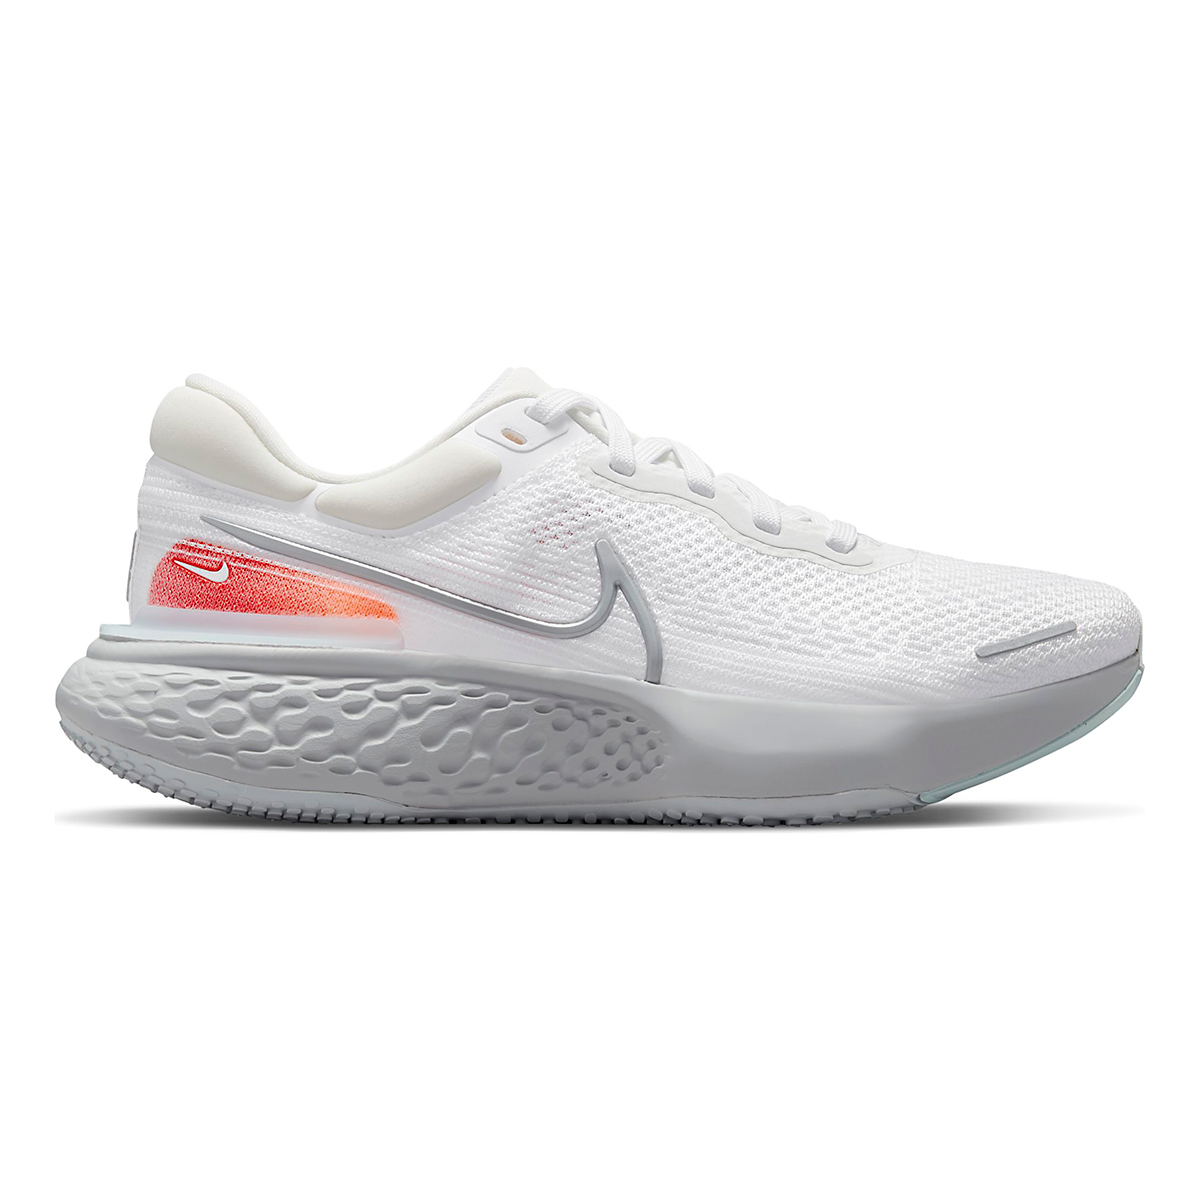 Men's Nike ZoomX Invincible Run Flyknit Running Shoe - Color: White/Metallic Silver/Pure Platinum - Size: 6 - Width: Regular, White/Metallic Silver/Pure Platinum, large, image 1